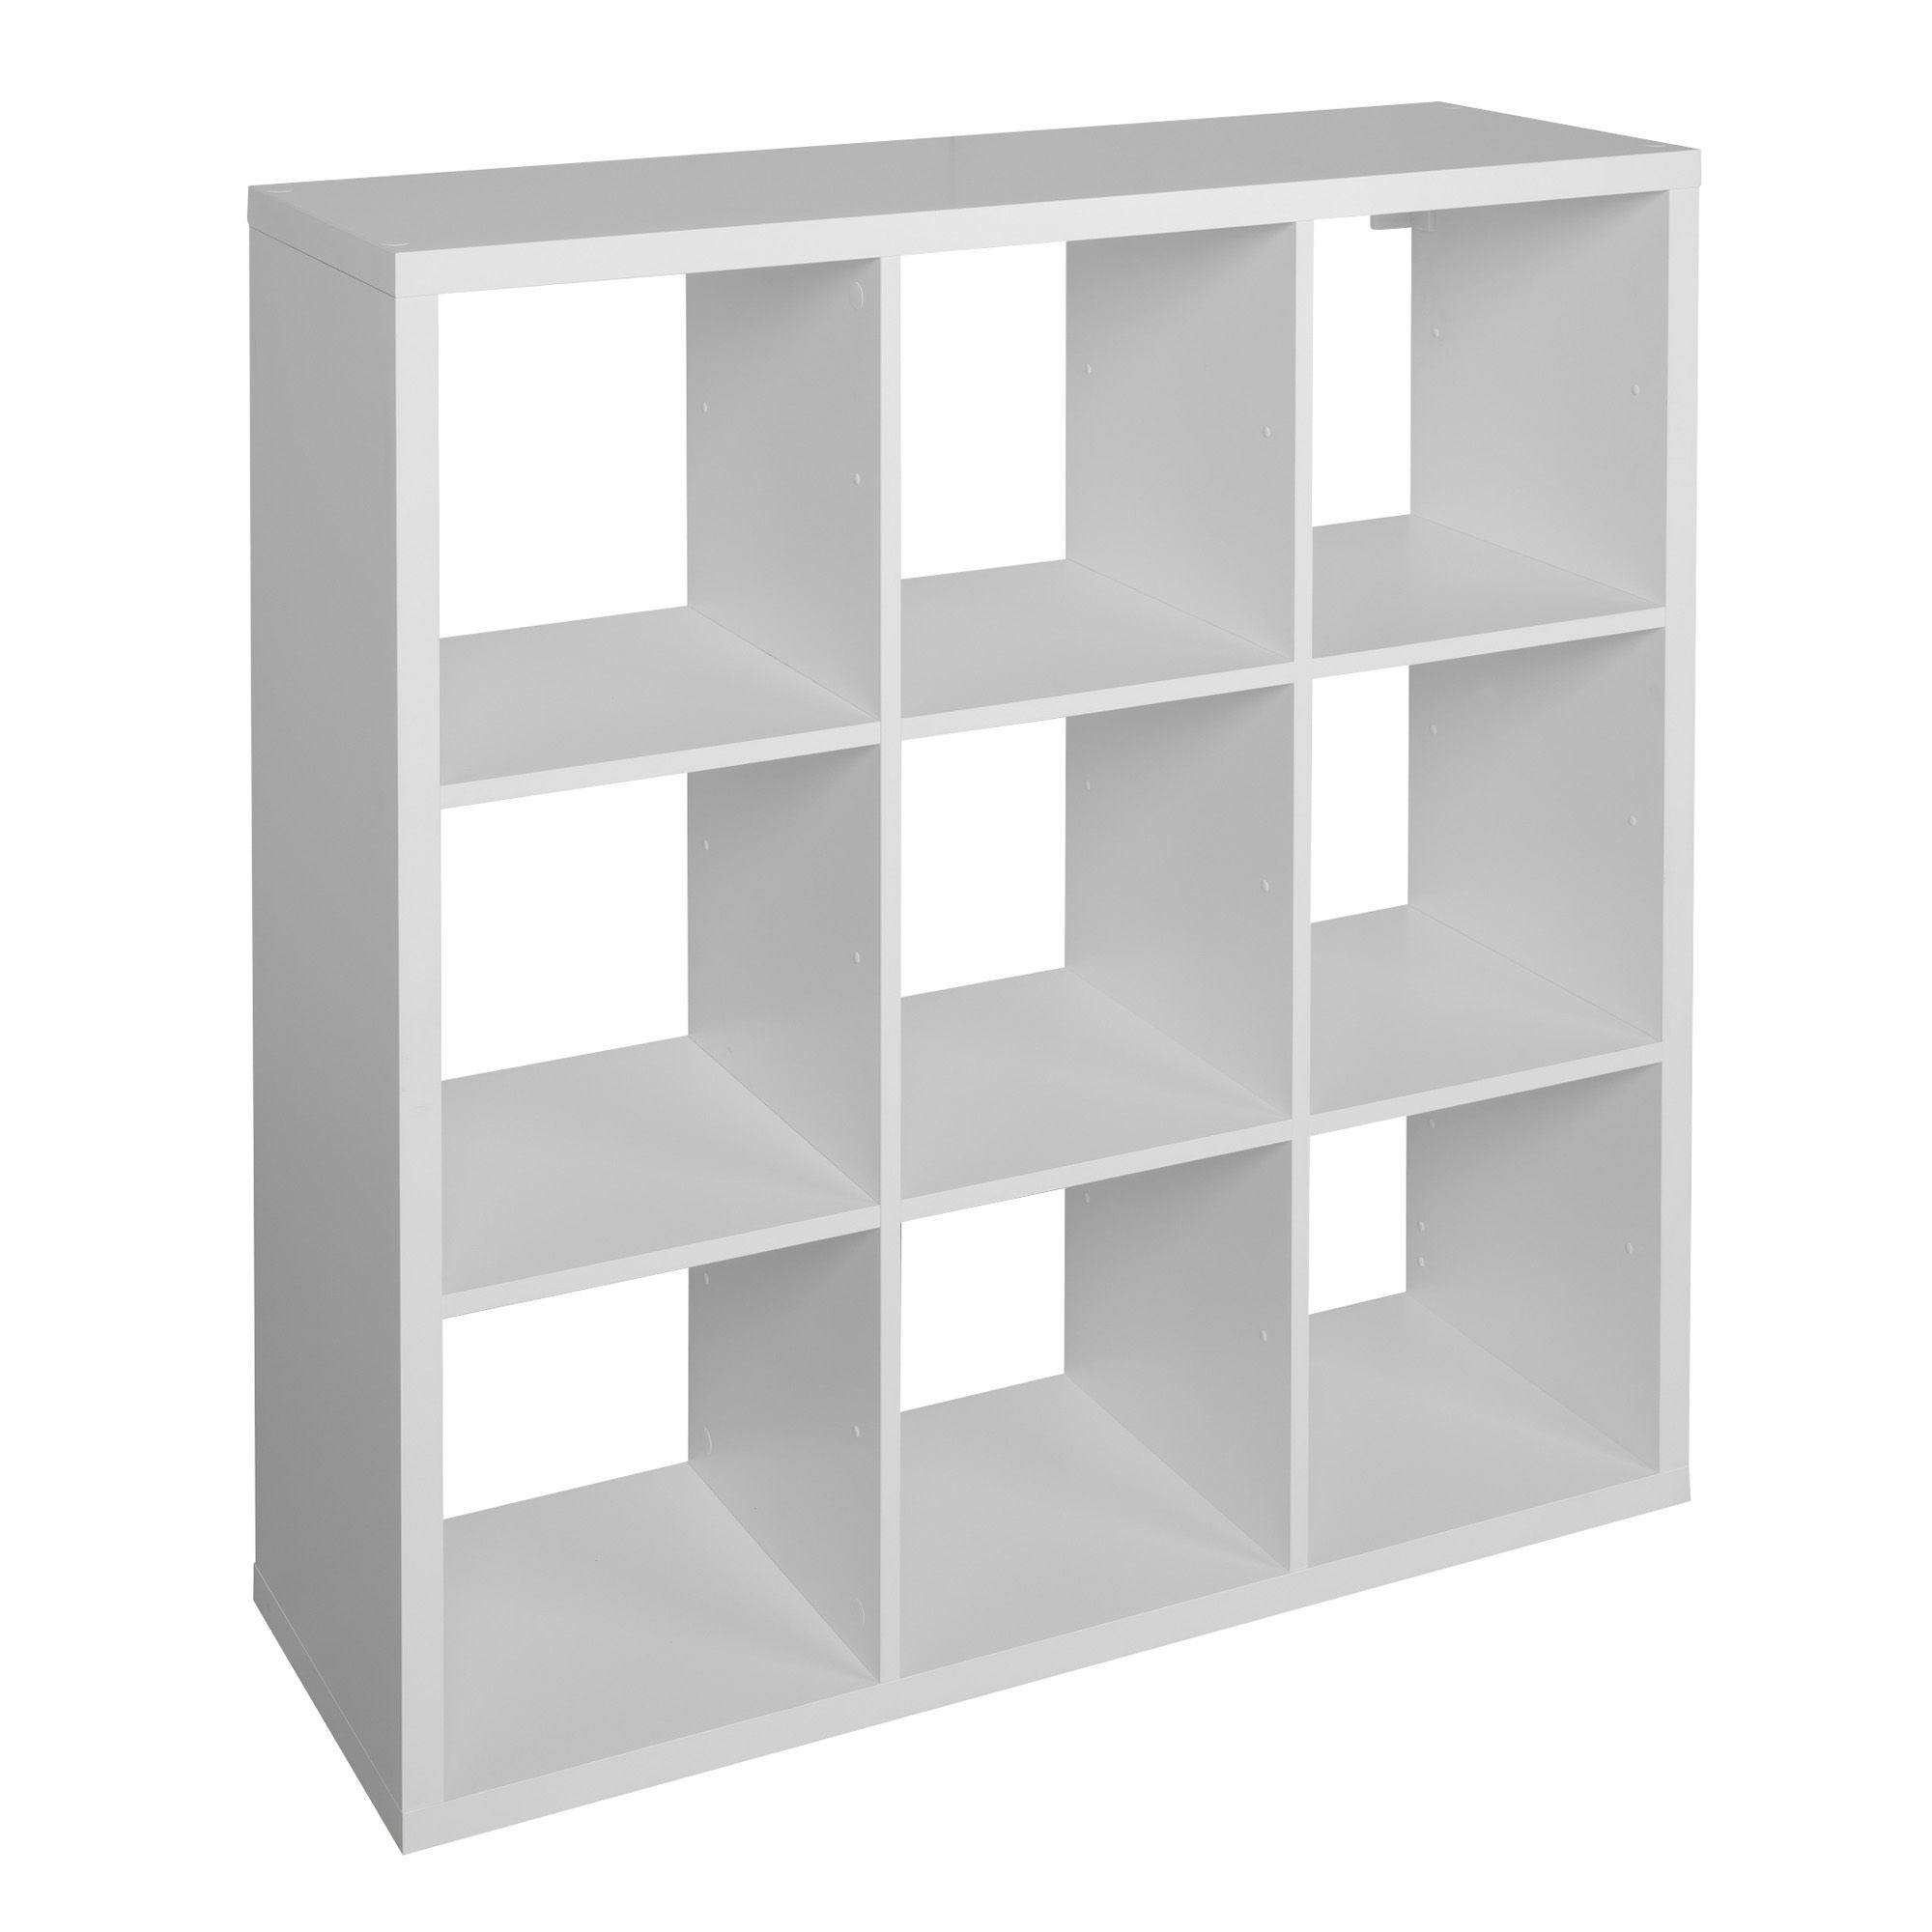 form mixxit white 9 cube shelving unit h1080mm w1080mm